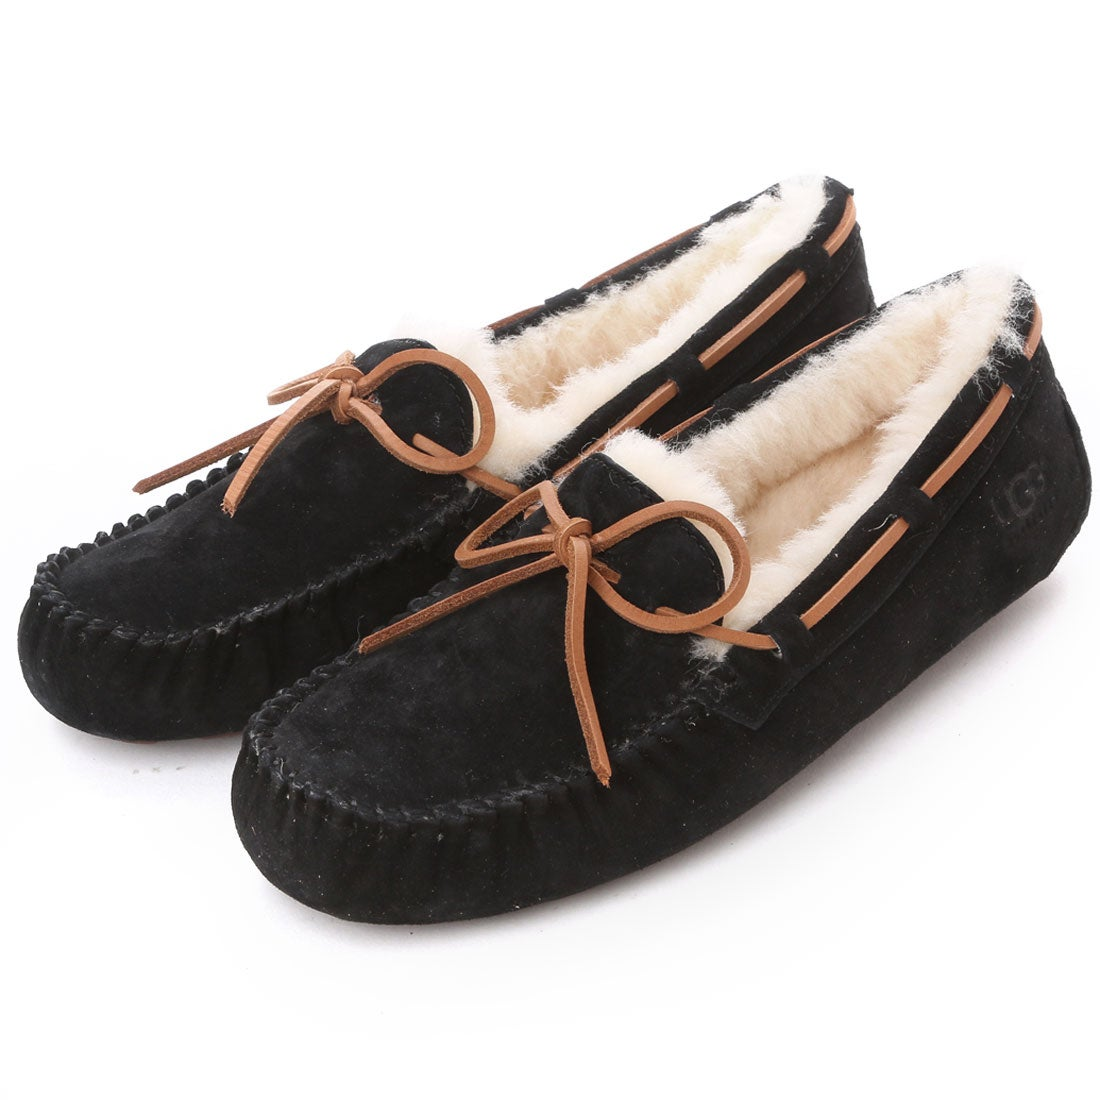 【SALE 15%OFF】アグ UGG Dakota (Black) レディース